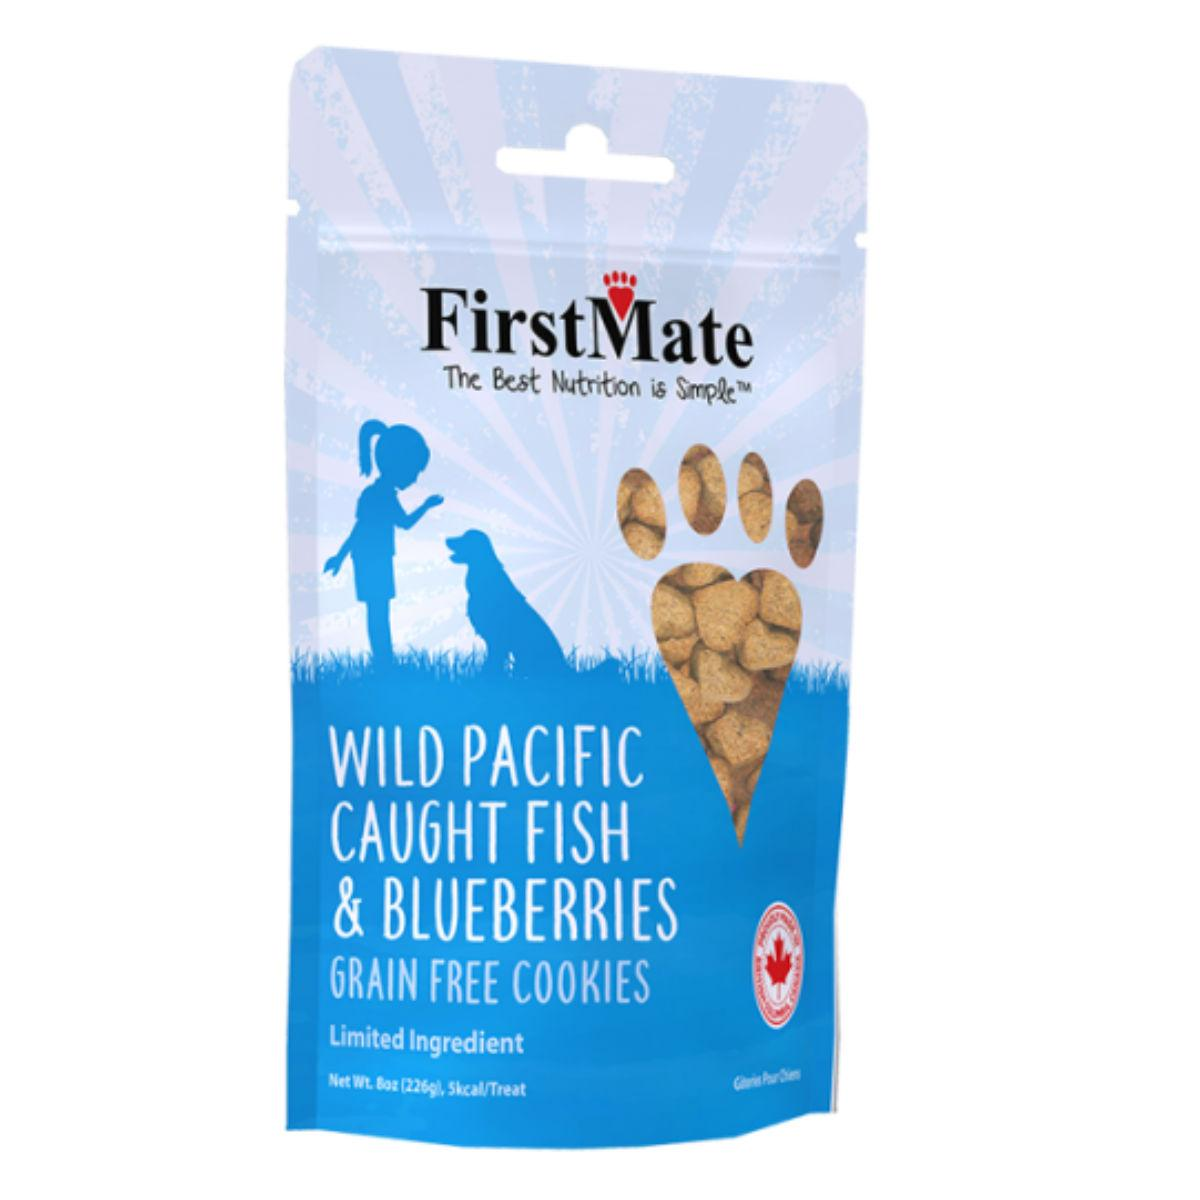 FirstMate Grain Free Cookie Dog Treats - Wild Pacific Caught Fish & Blueberries